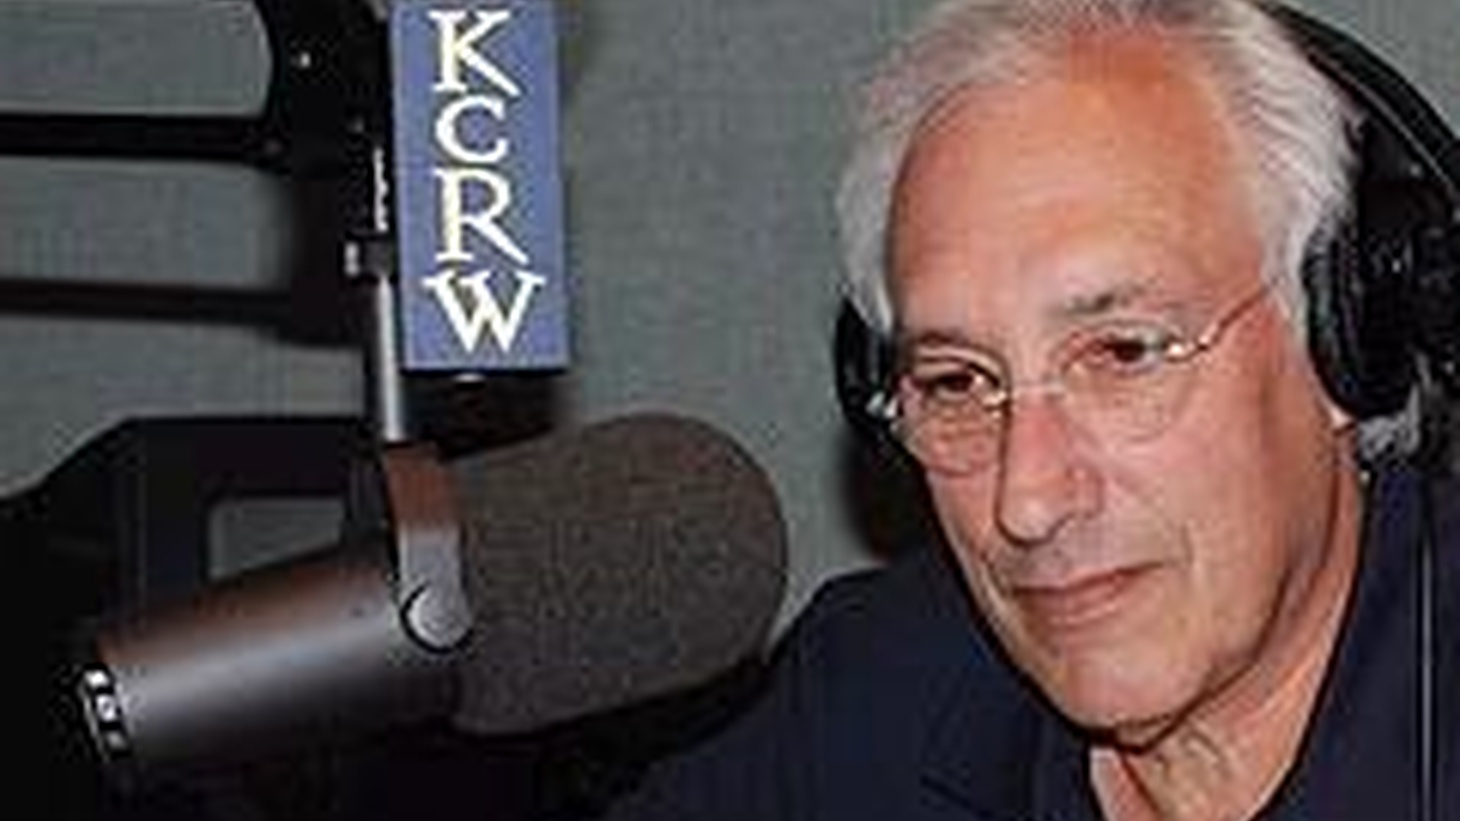 No living writer/director has influenced TV in the way that Steven Bochco has.